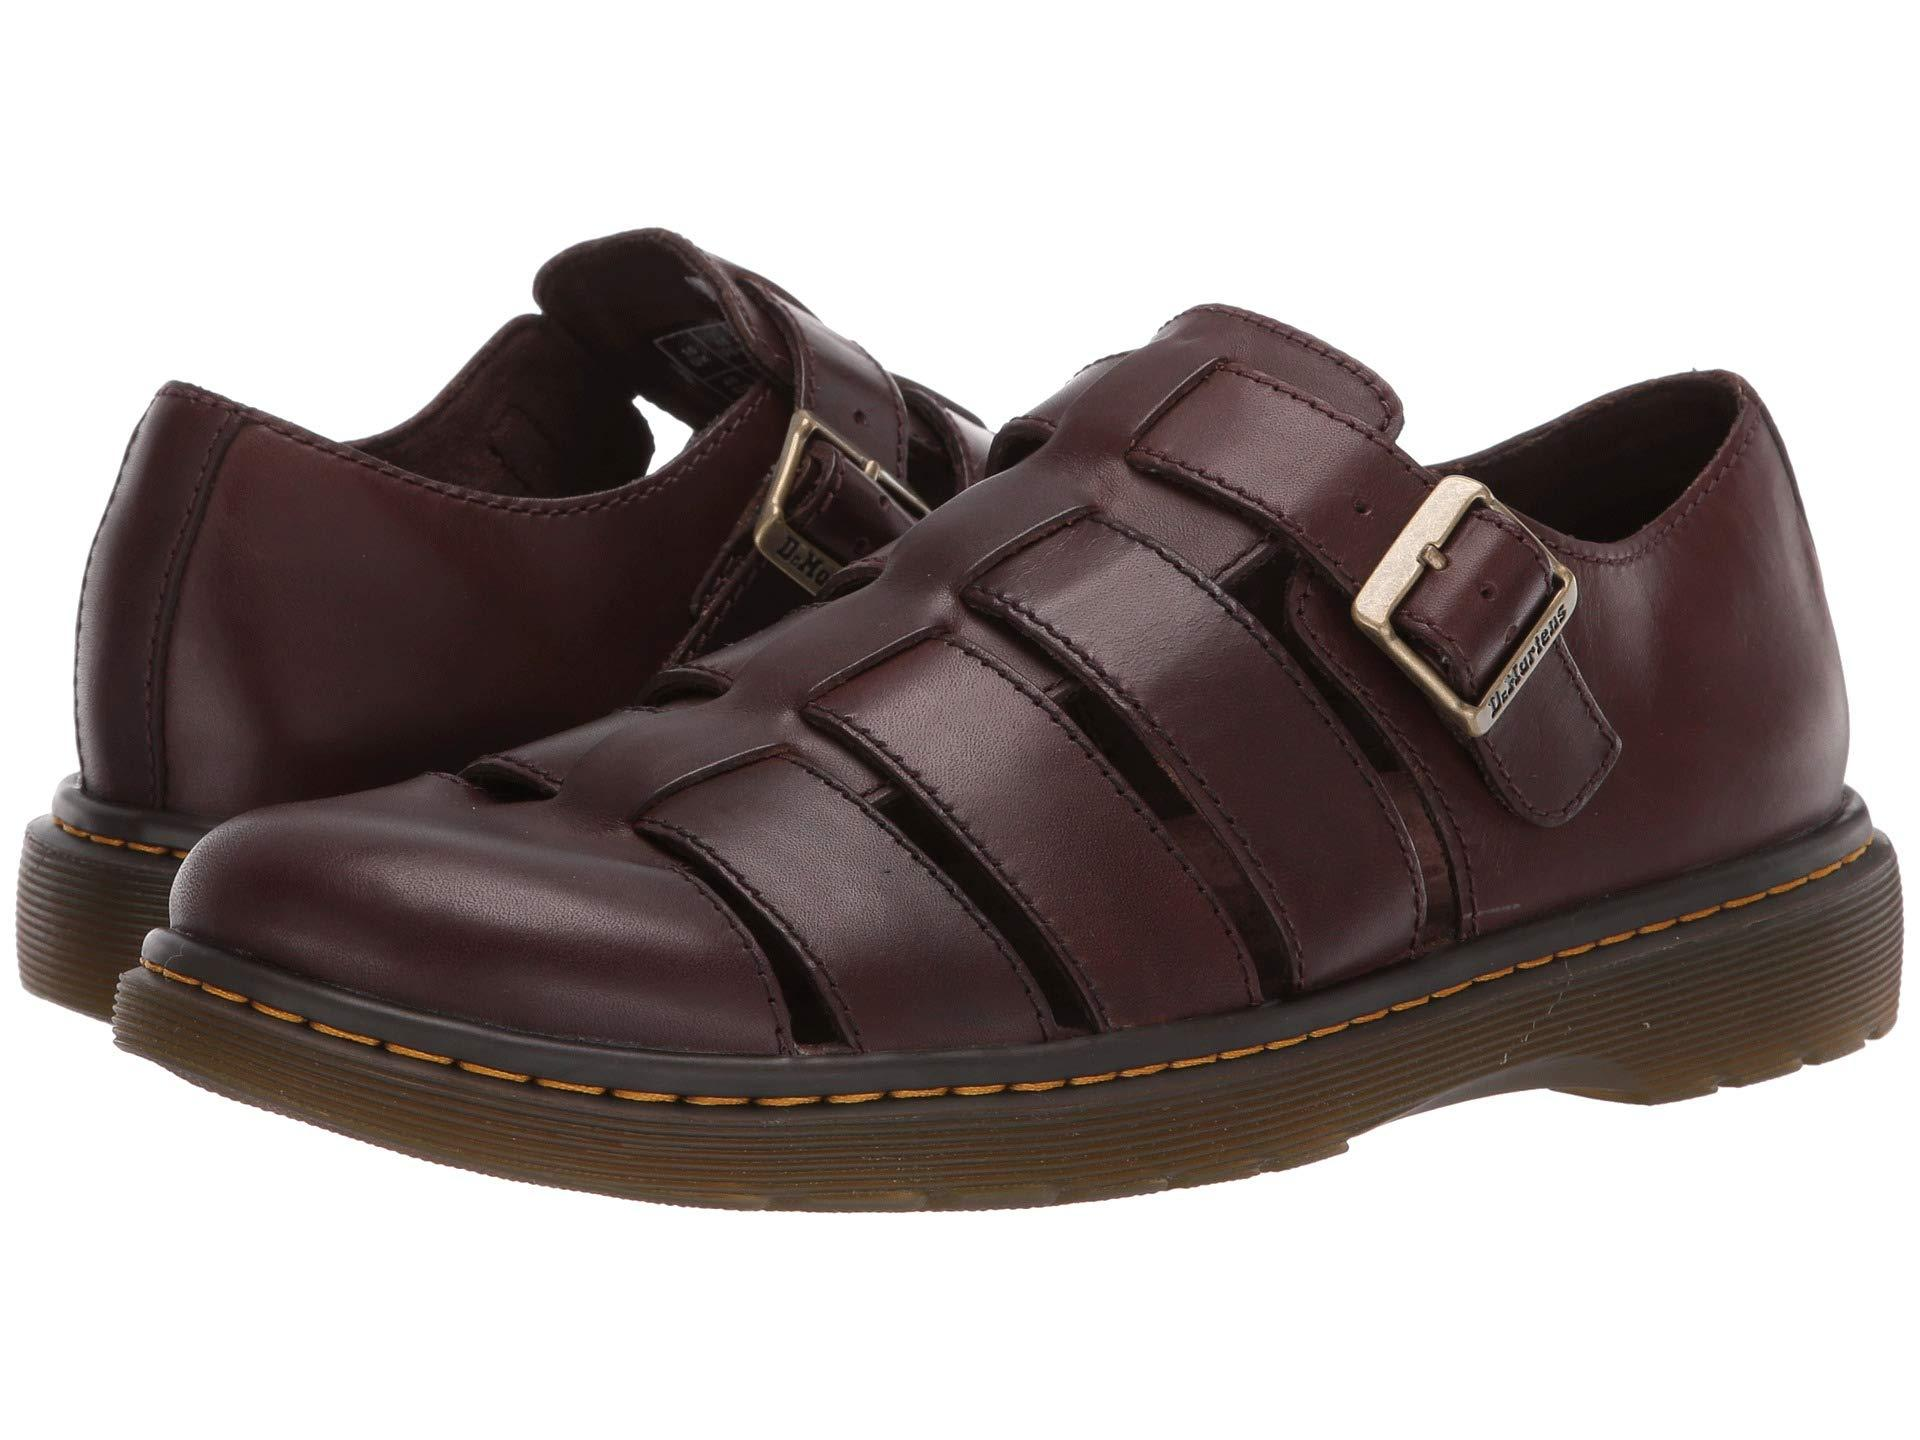 079b1edcee Lyst - Dr. Martens Fenton Westfield (black) Men's Sandals in Brown ...